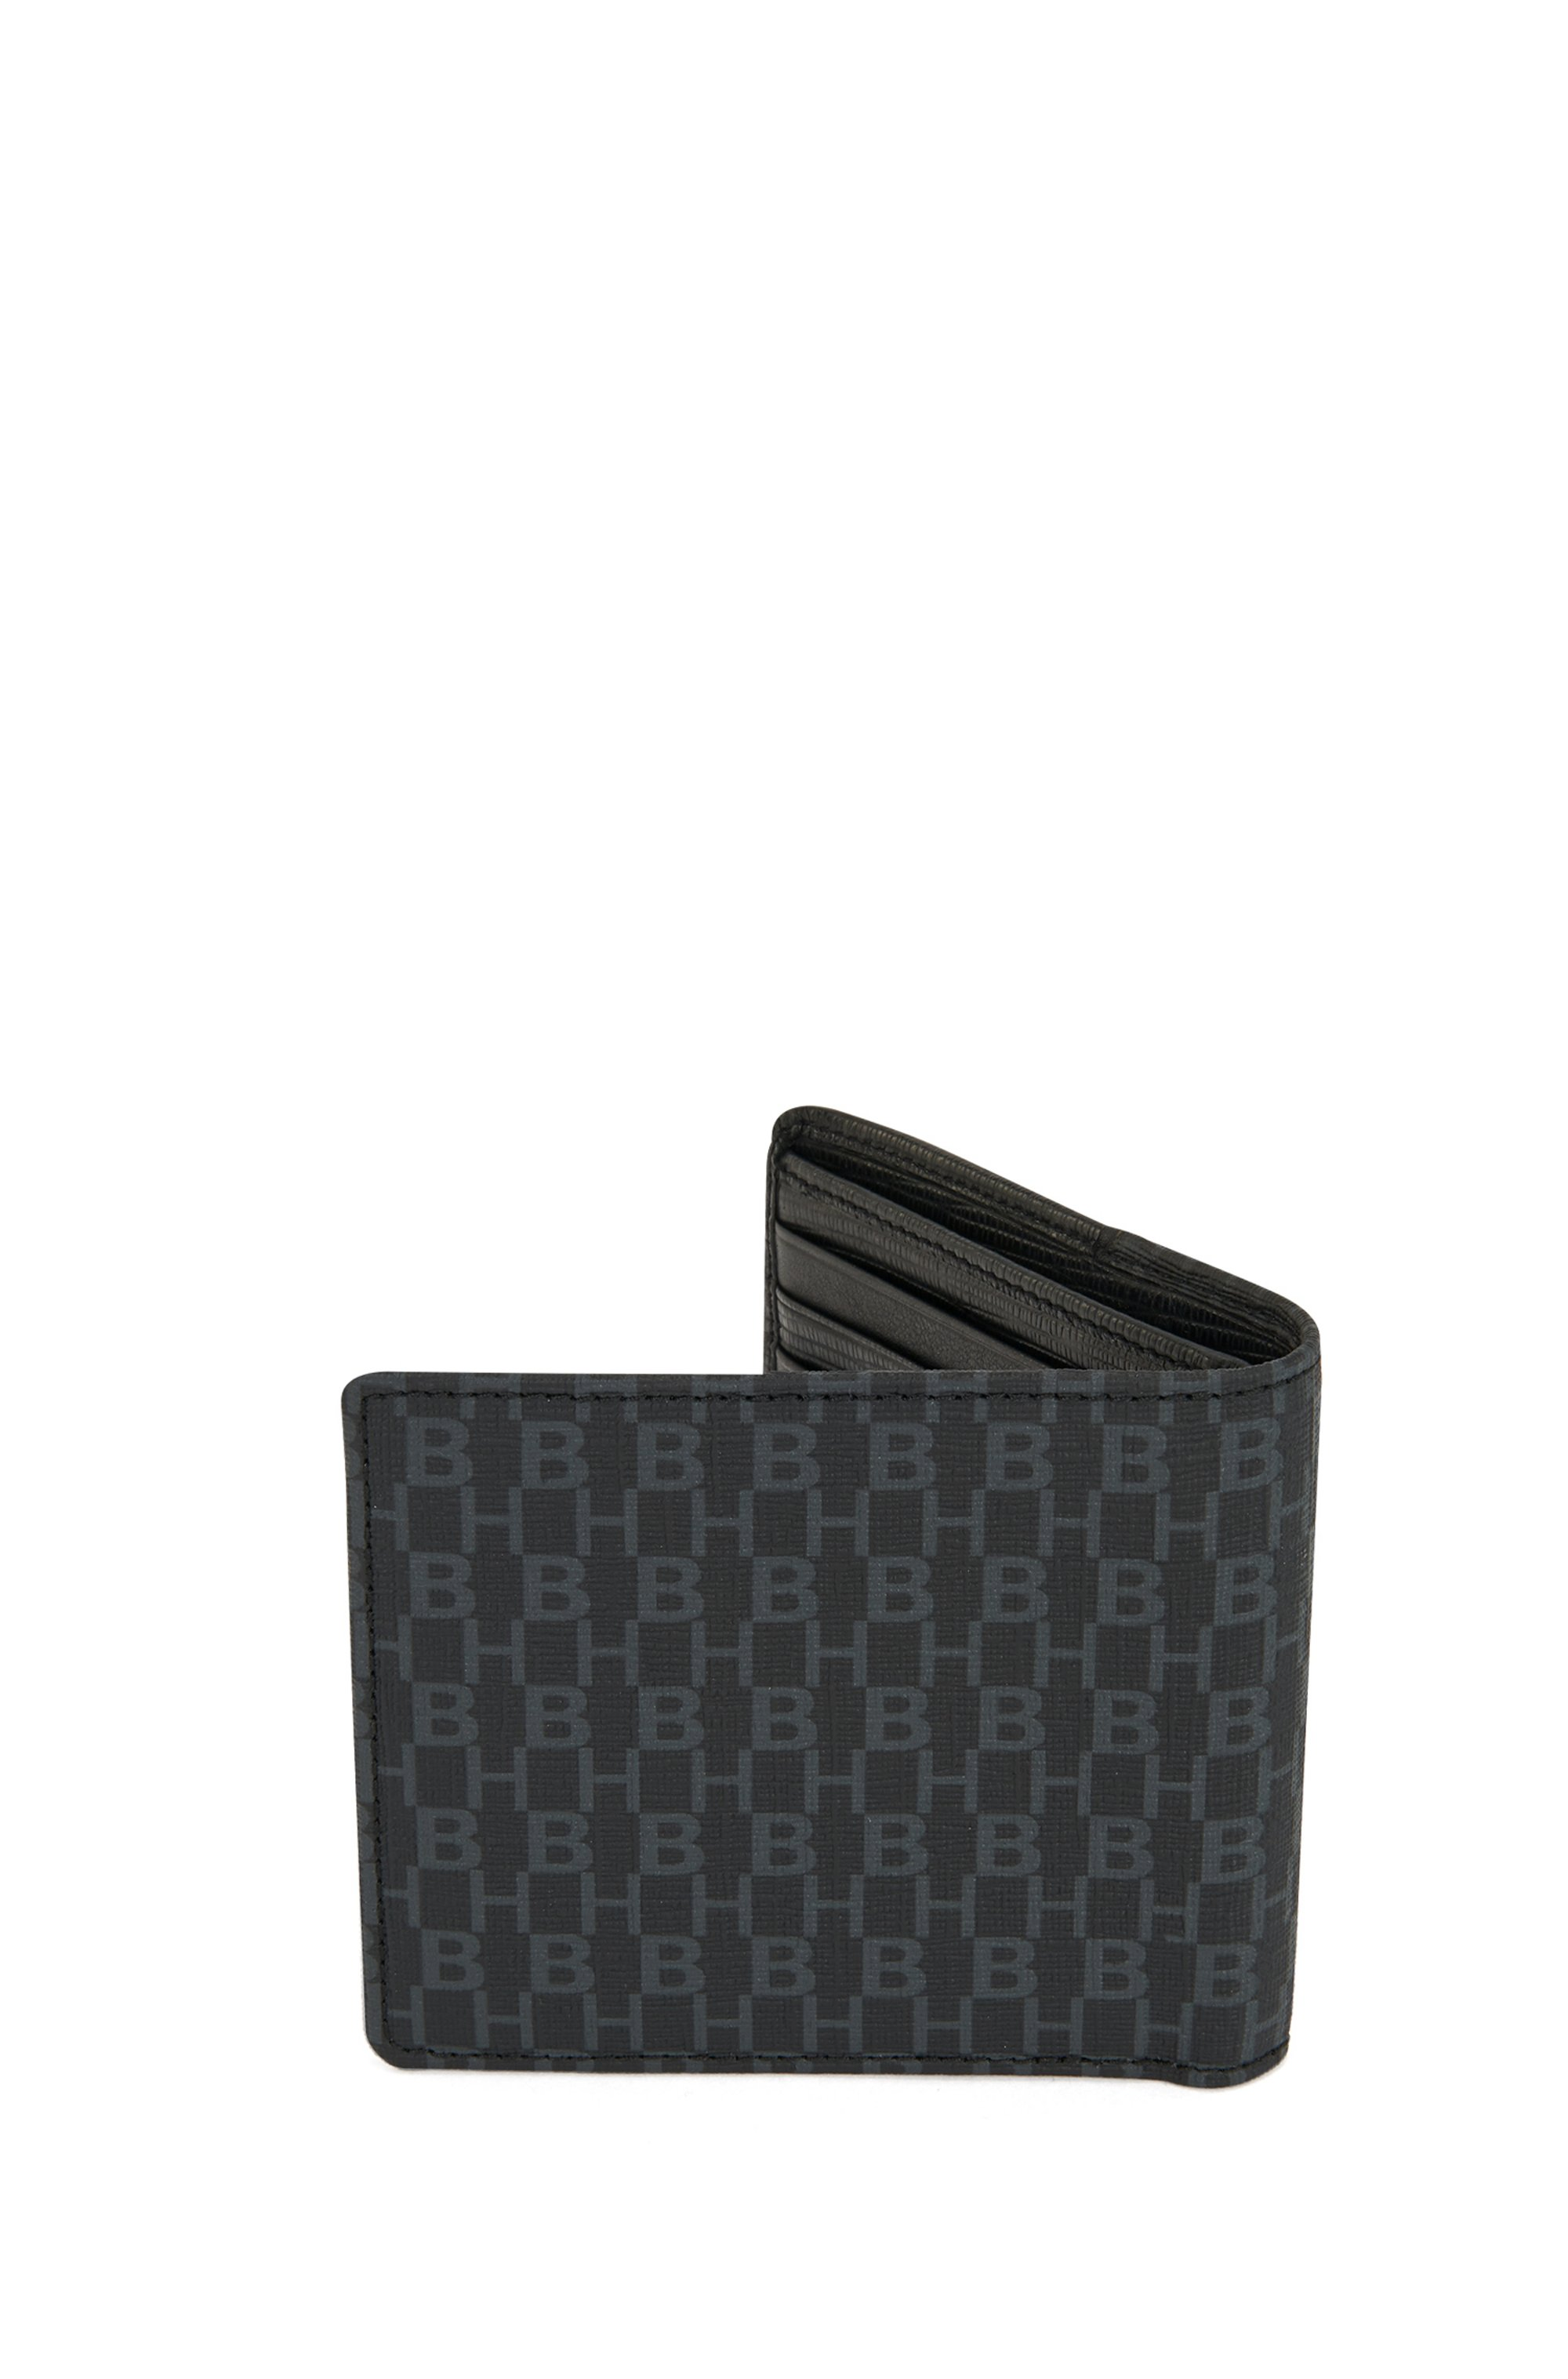 Monogram wallet in coated Italian fabric with leather trims